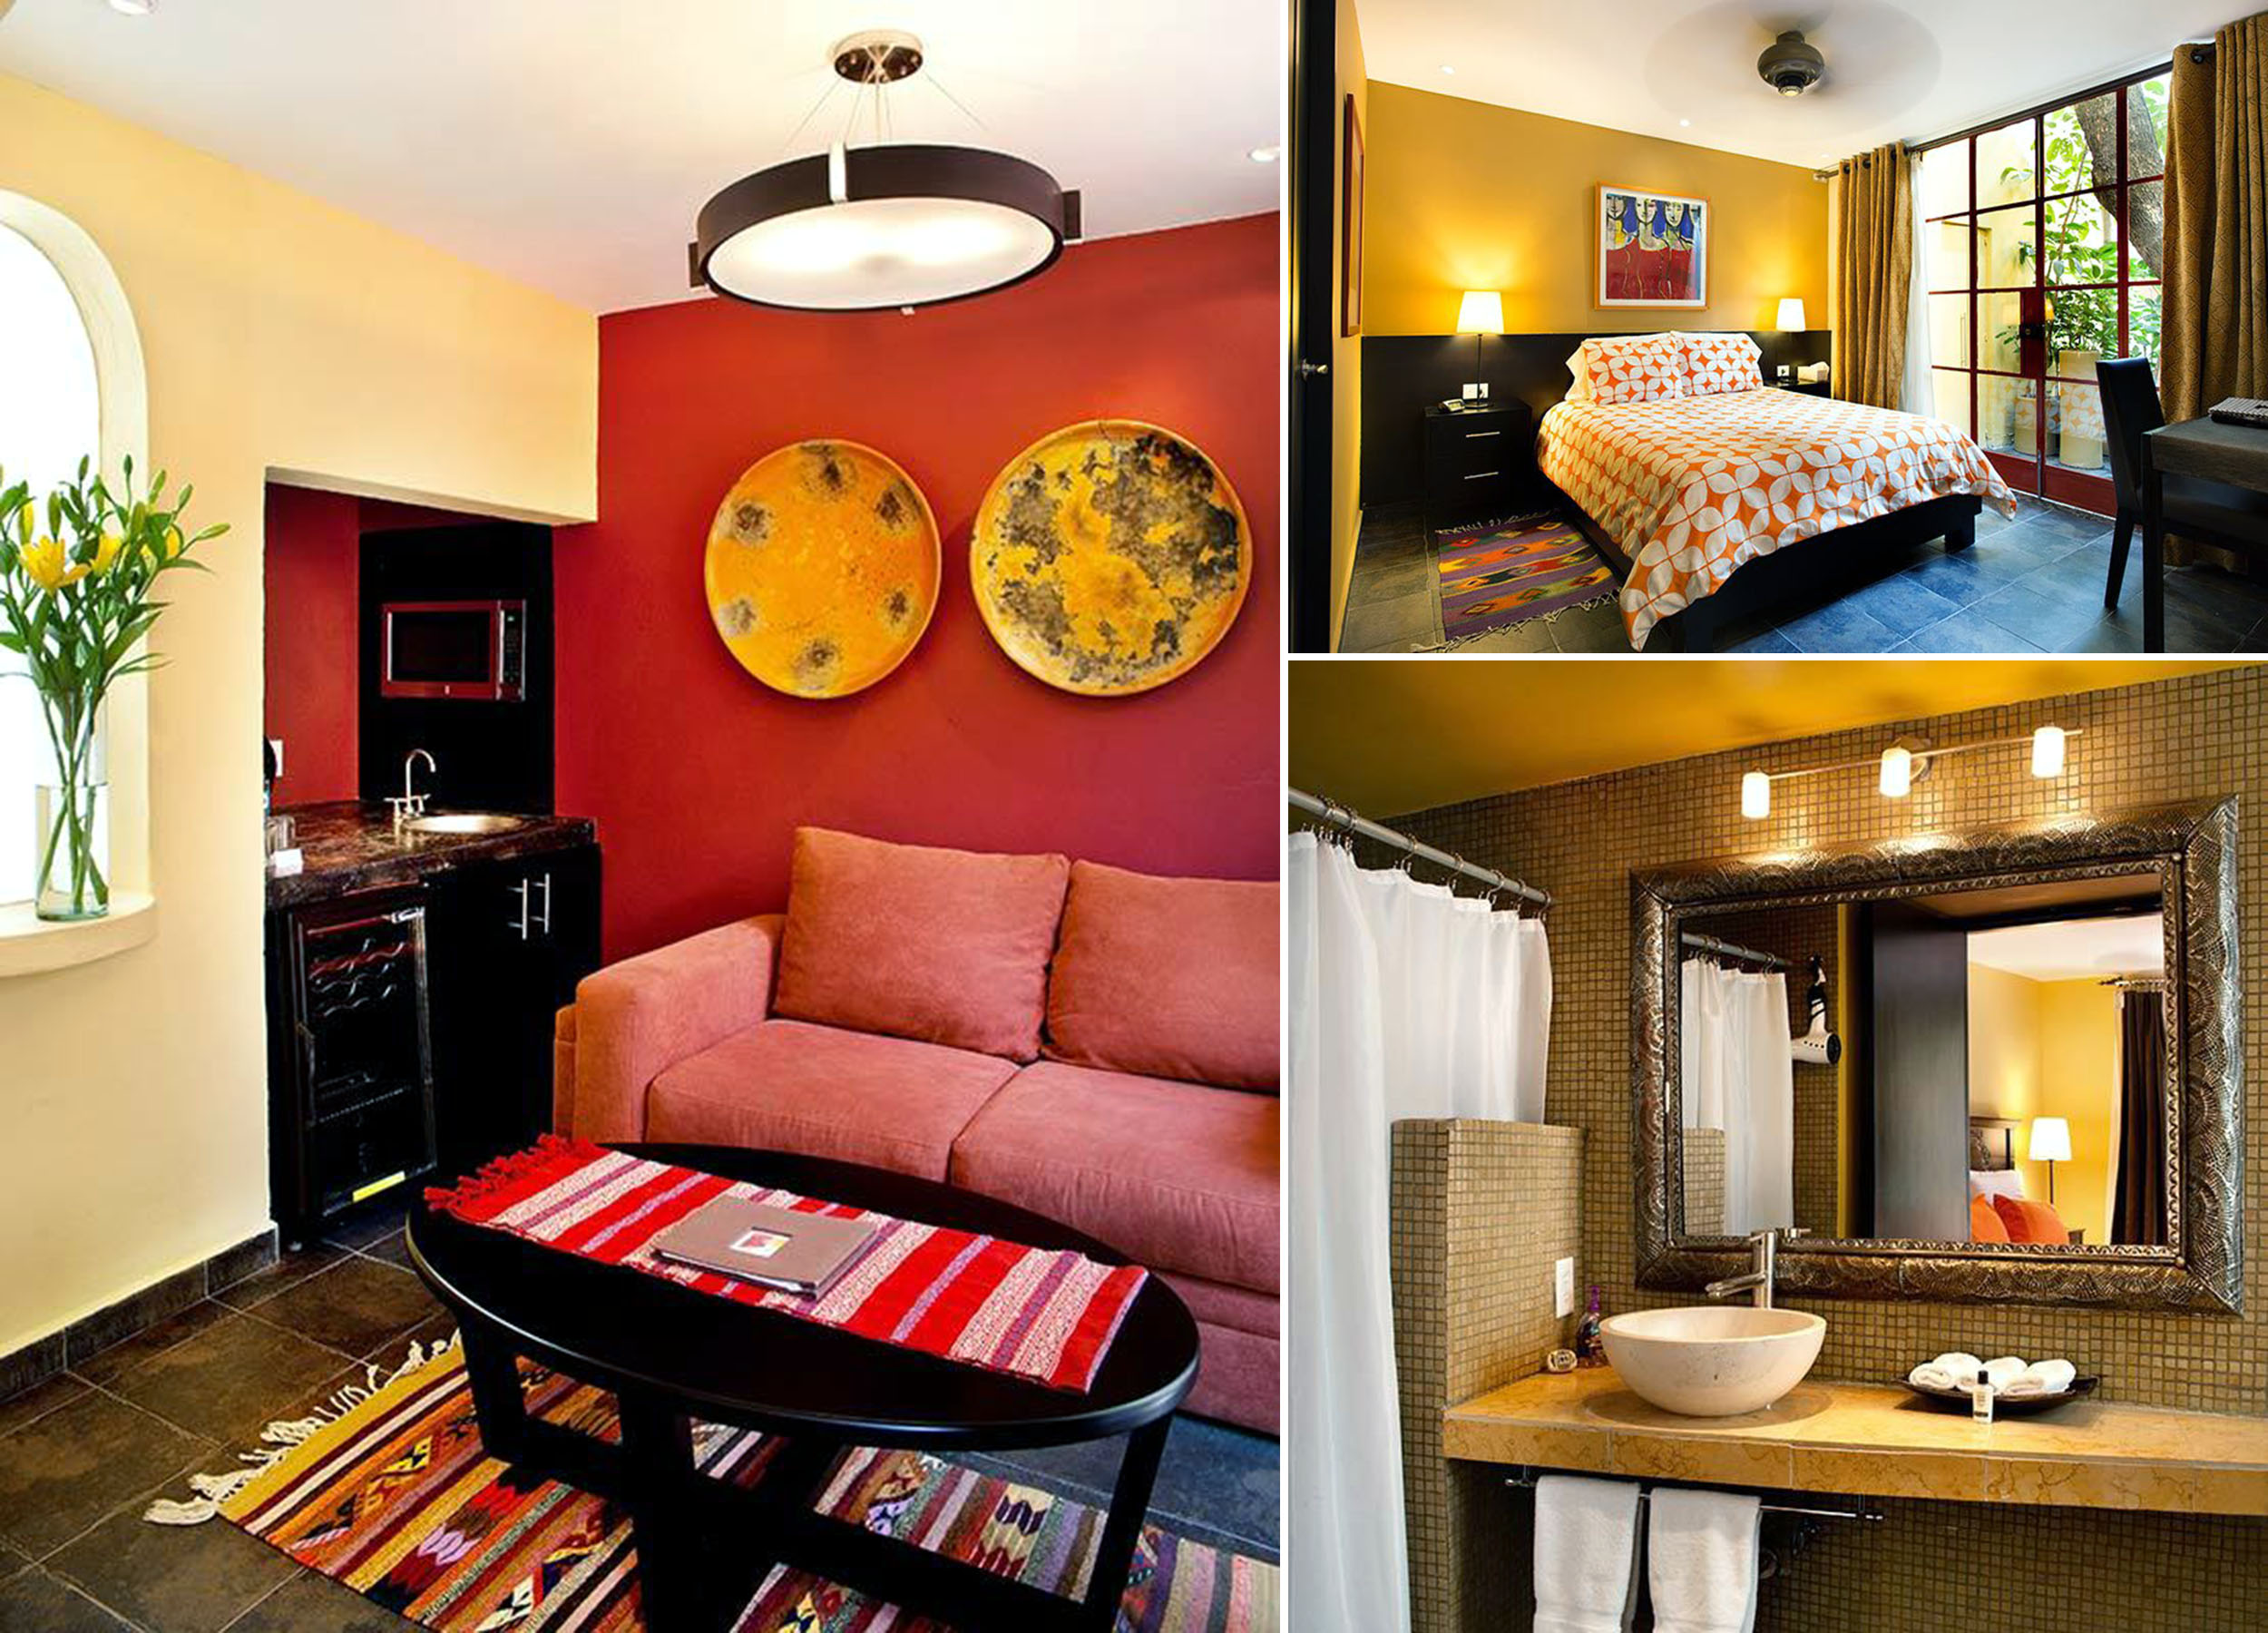 Feeling right at home: the Junior Suite at Condesa's Red Tree House.